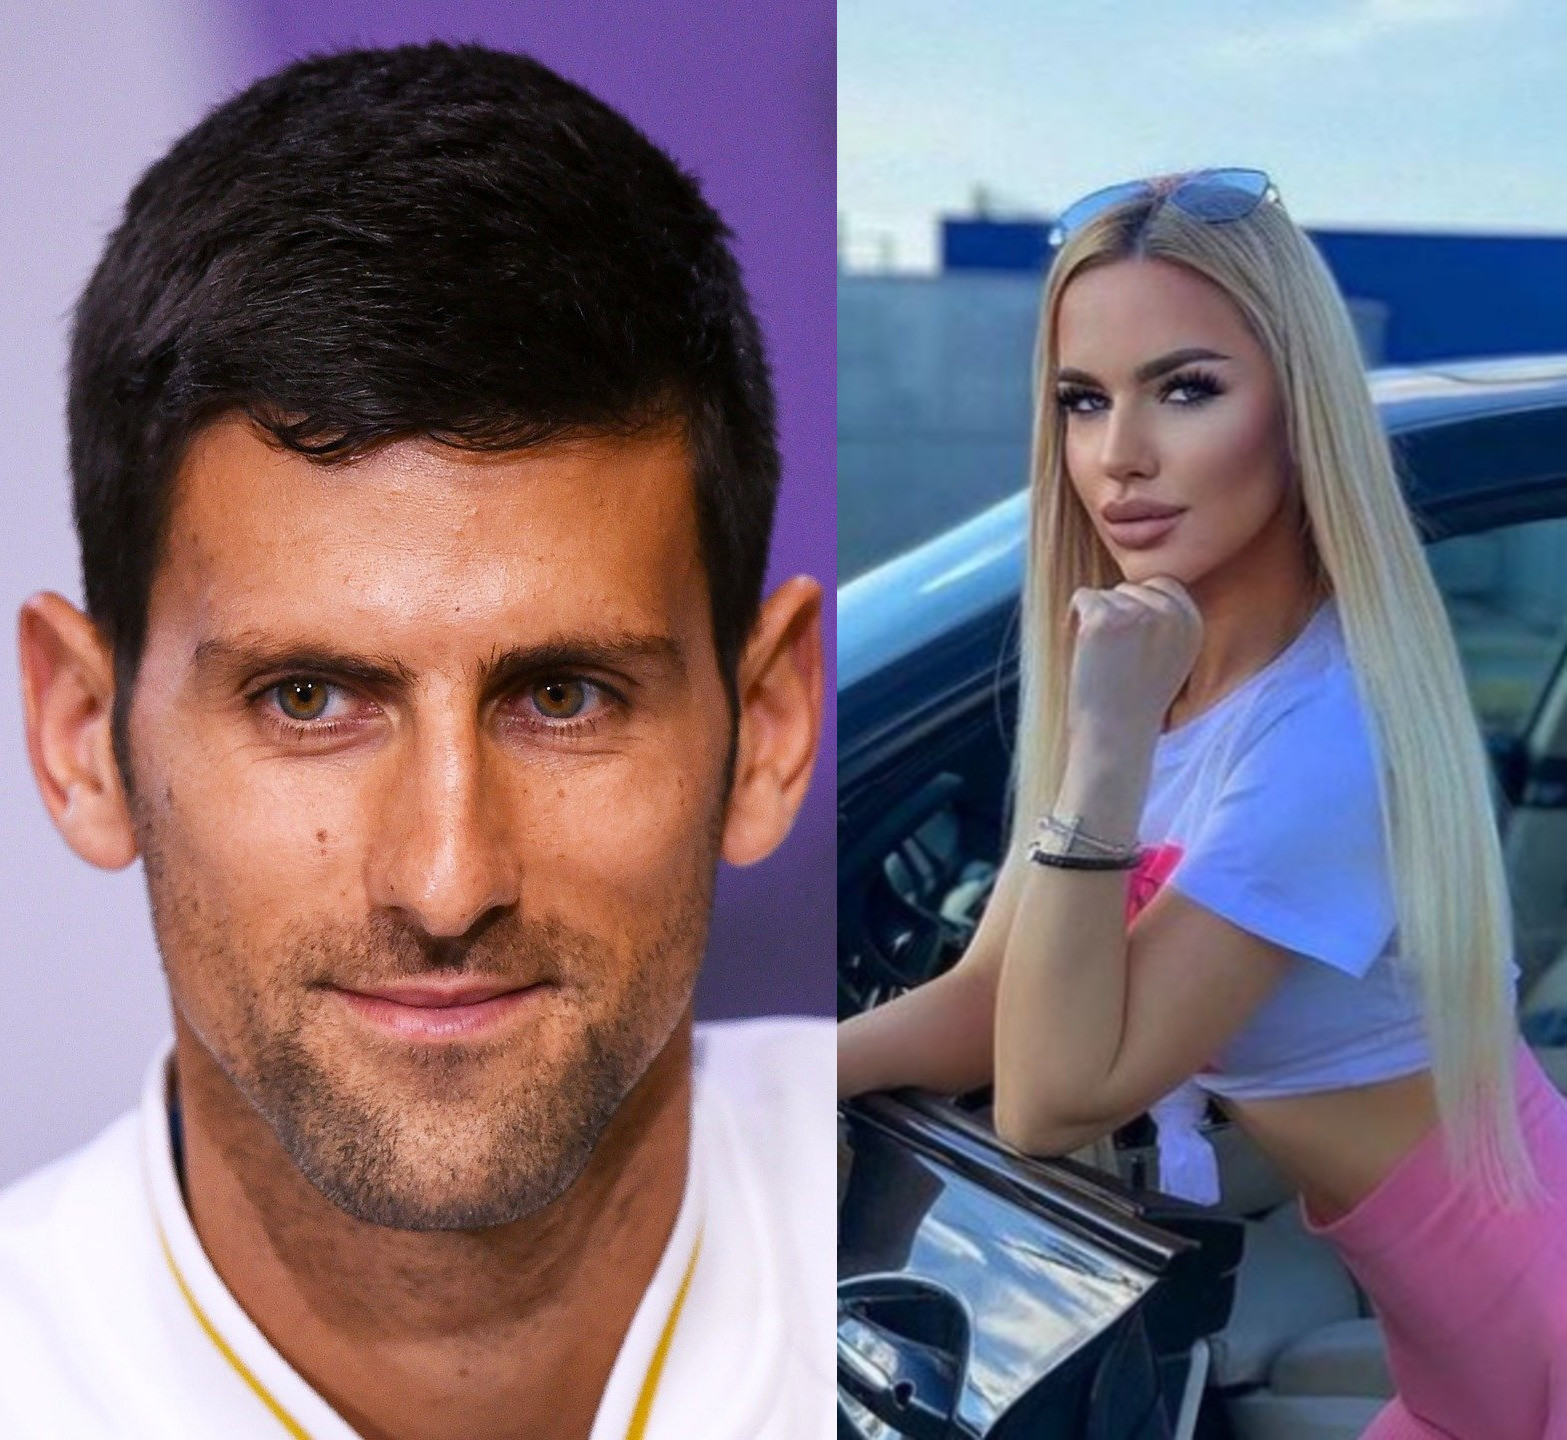 Model reveals she was offered ?52k to seduce tennis ace Novak Djokovic and destroy his marriage to his high school sweetheart